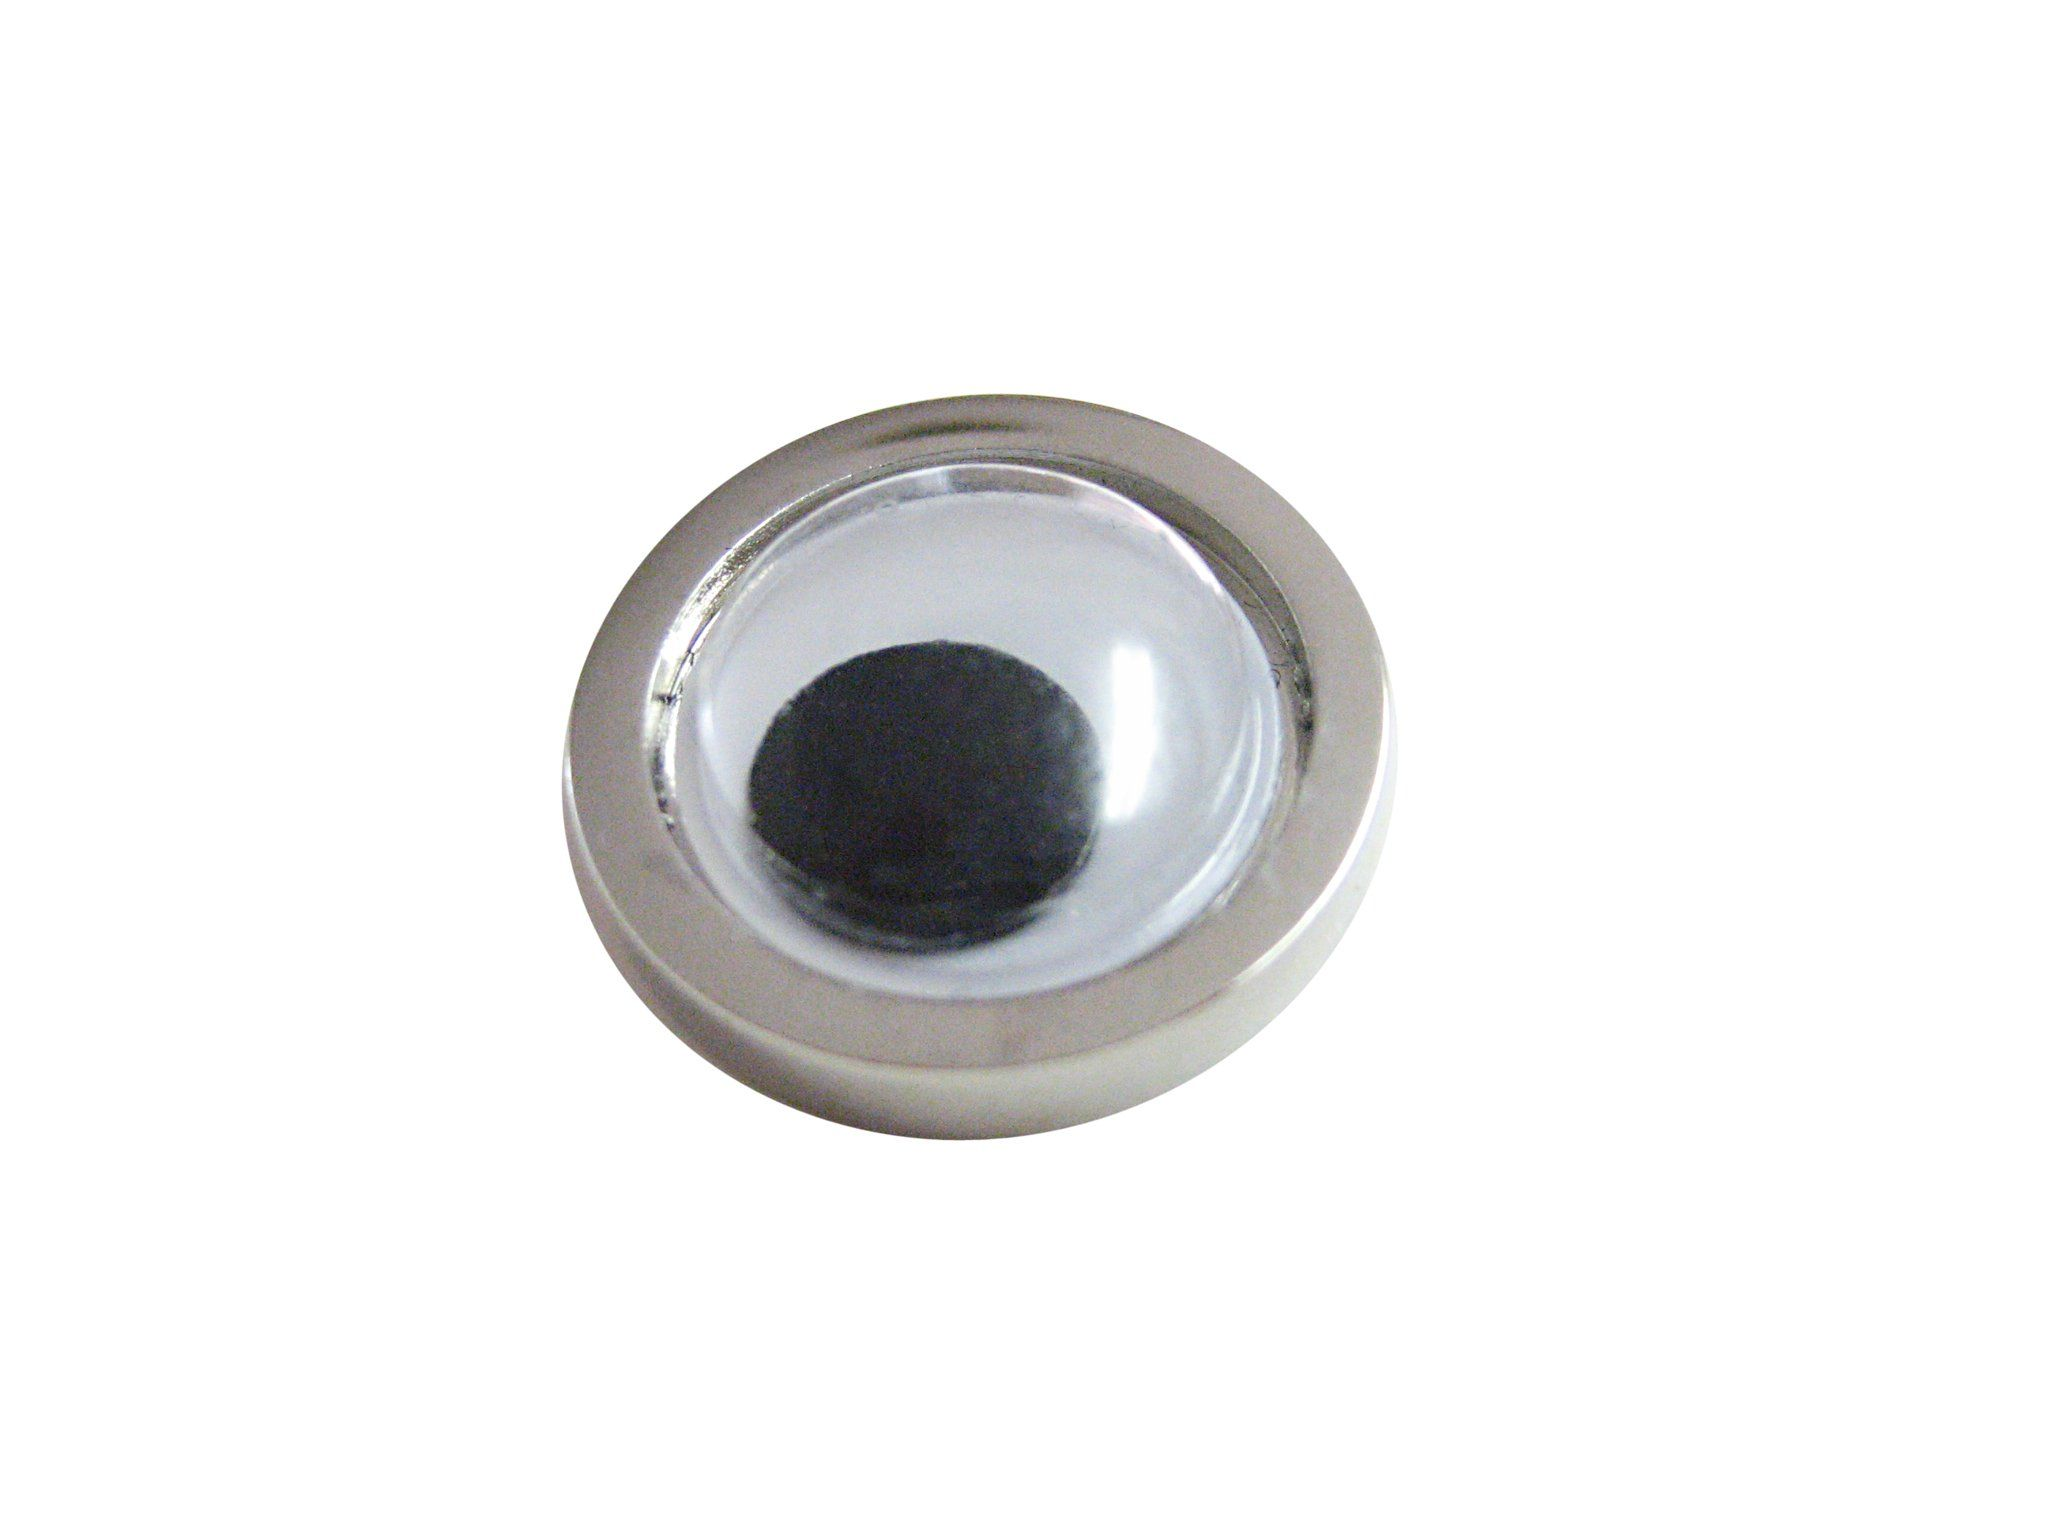 Googly Eye Magnet In 2020 Rare Earth Magnets Metallic Object Magnets